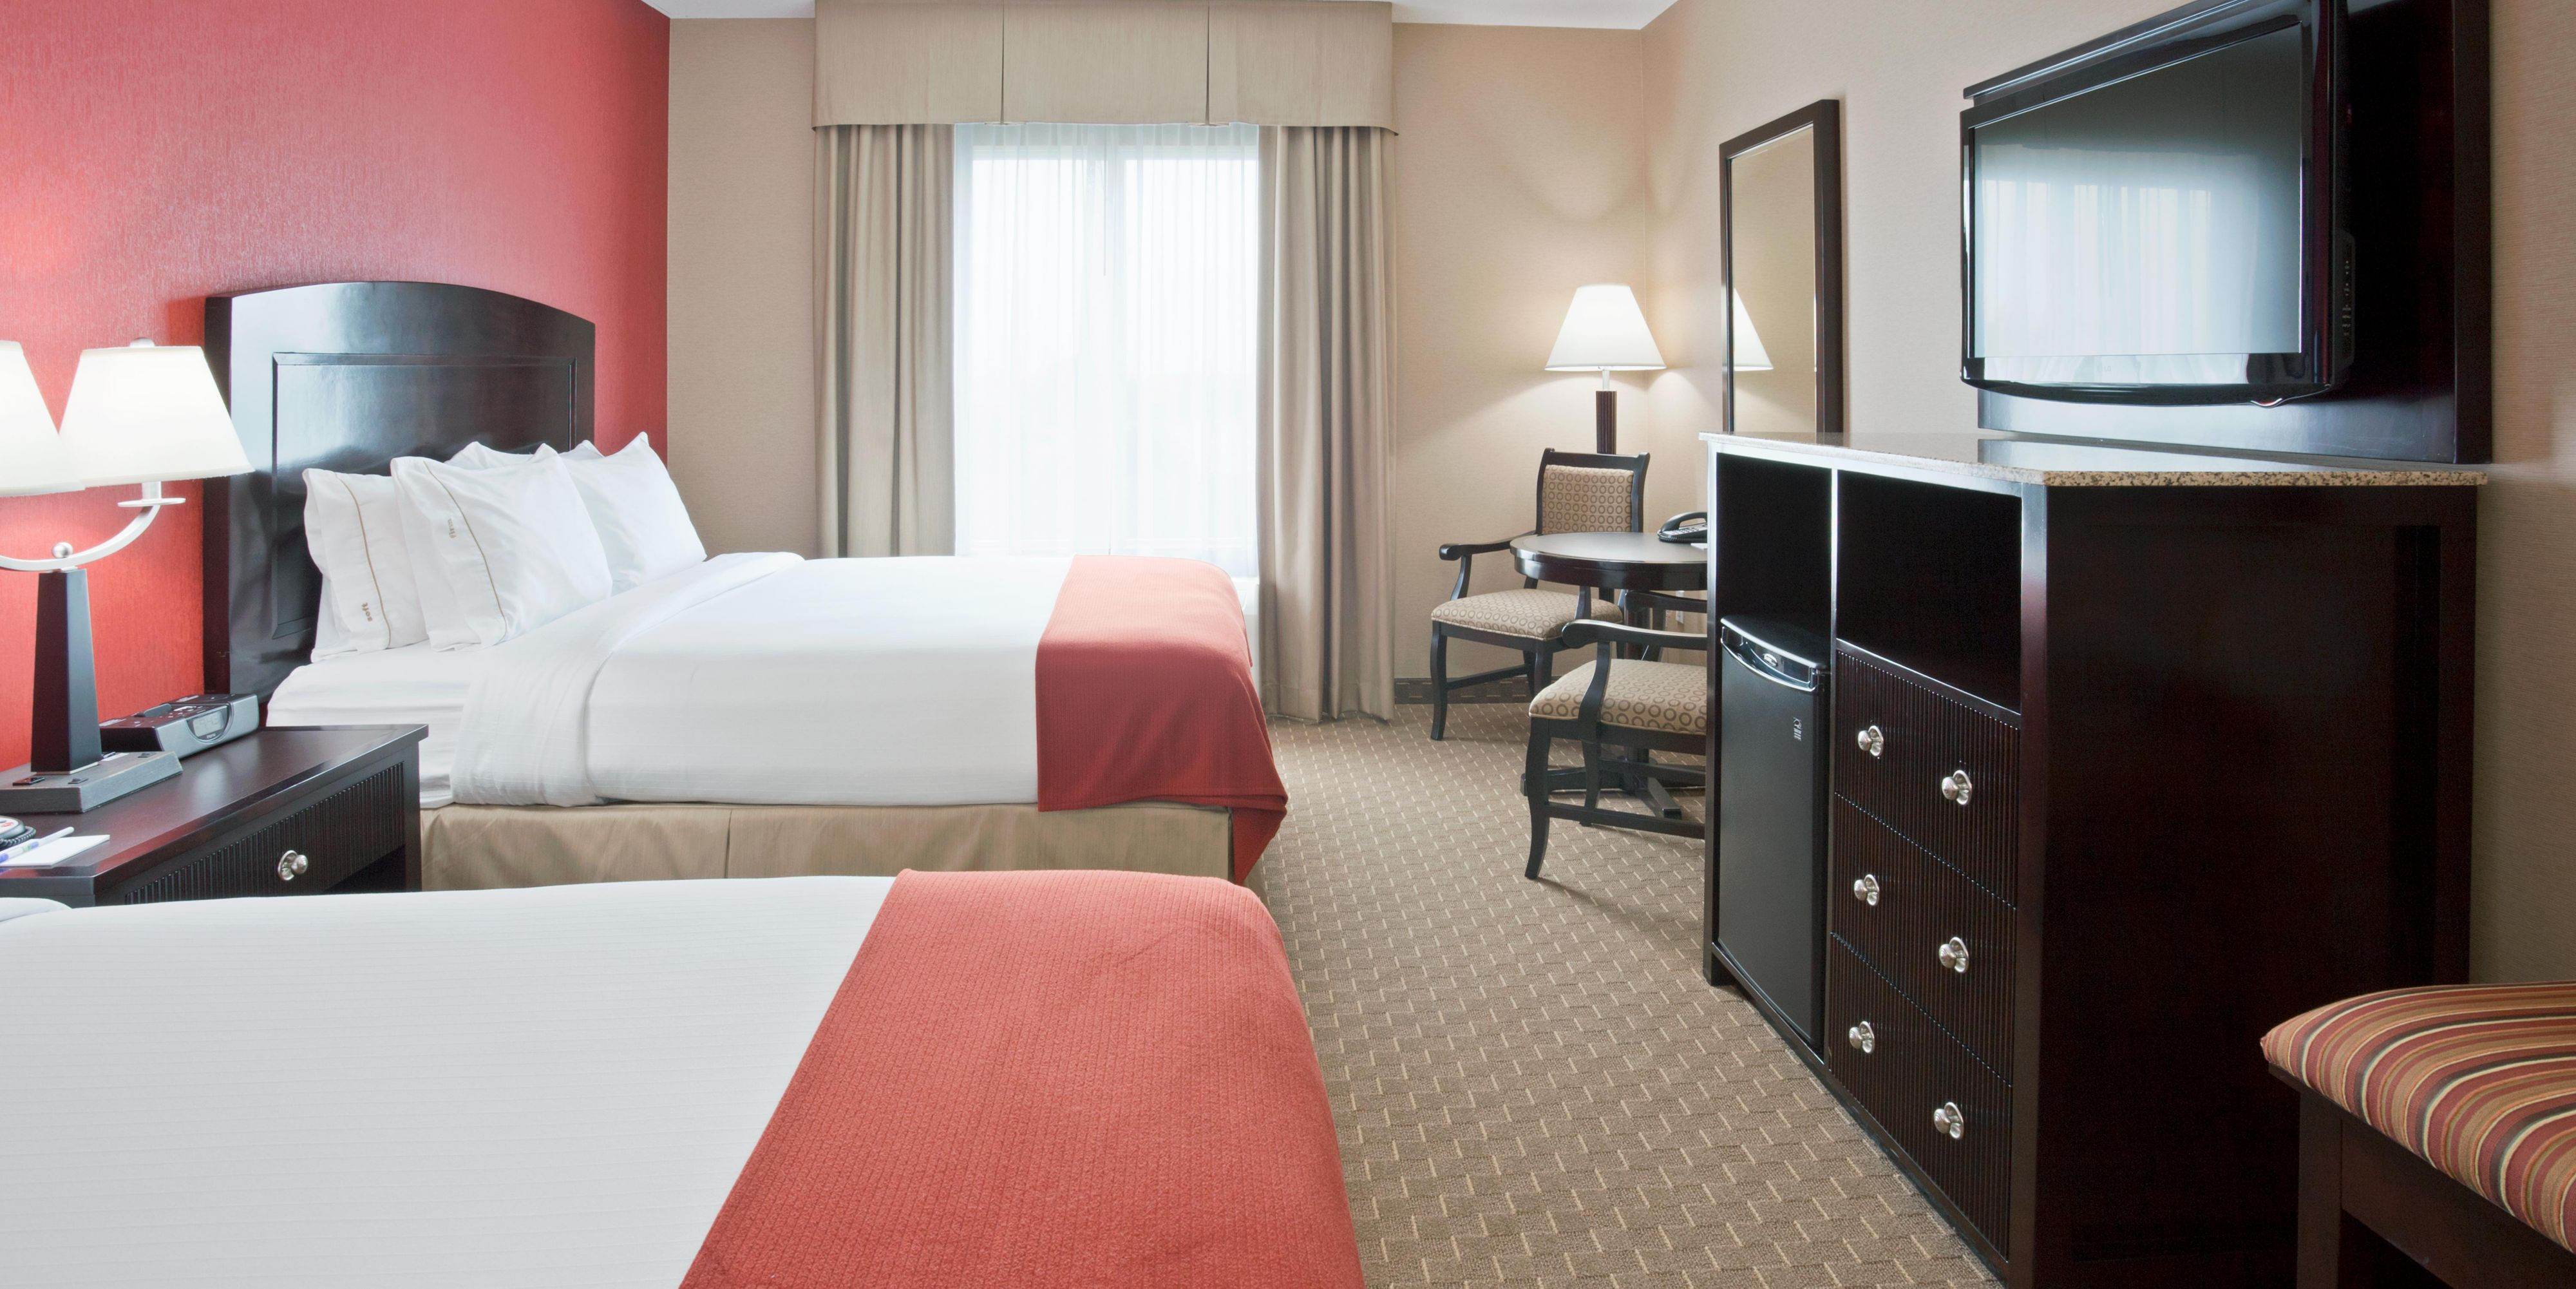 holiday-inn-express-and-suites-woodstock-4374021801-2x1